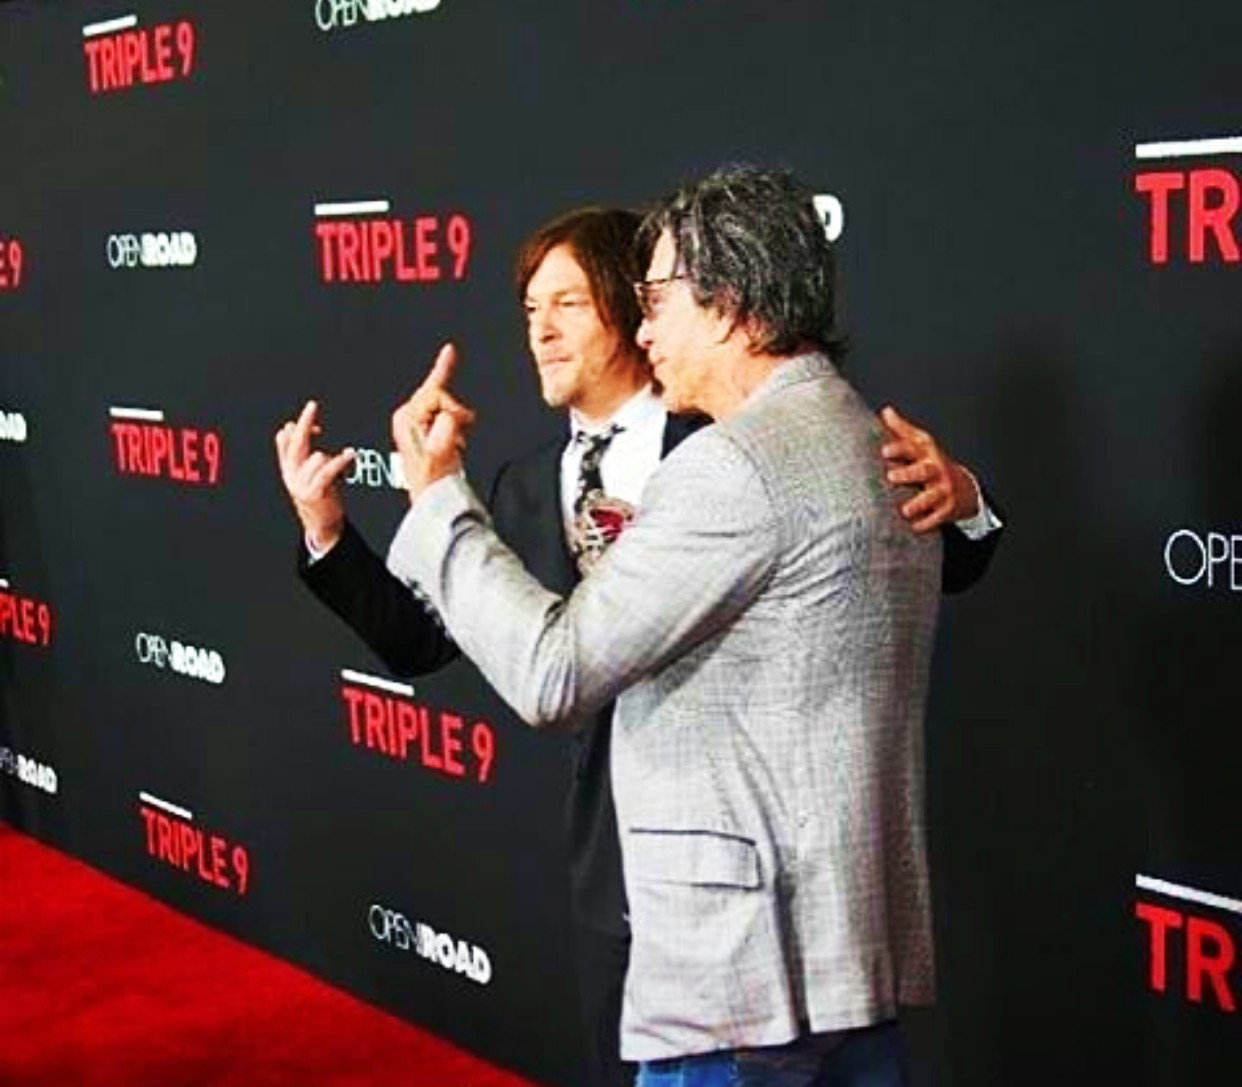 Triple 9, movie premiere, Norman Reedus, Mickey Rourke